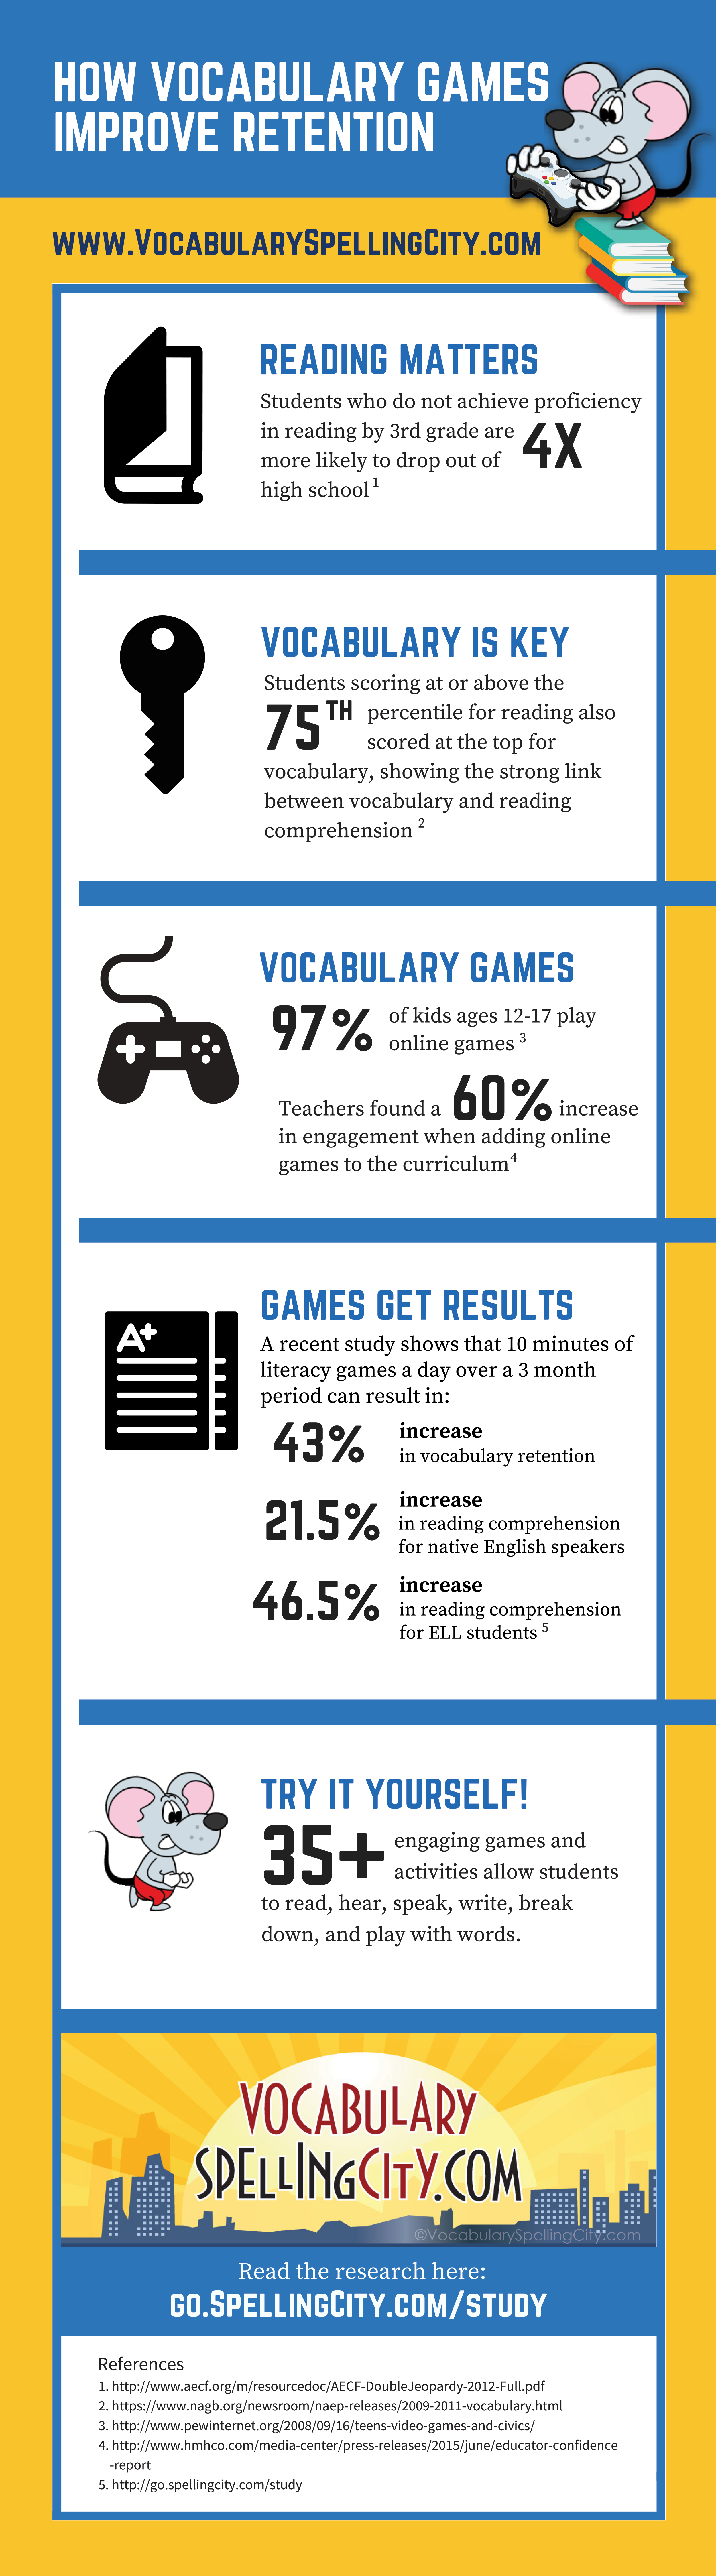 - Online Games Have Been Shown To Increase Vocabulary Retention And